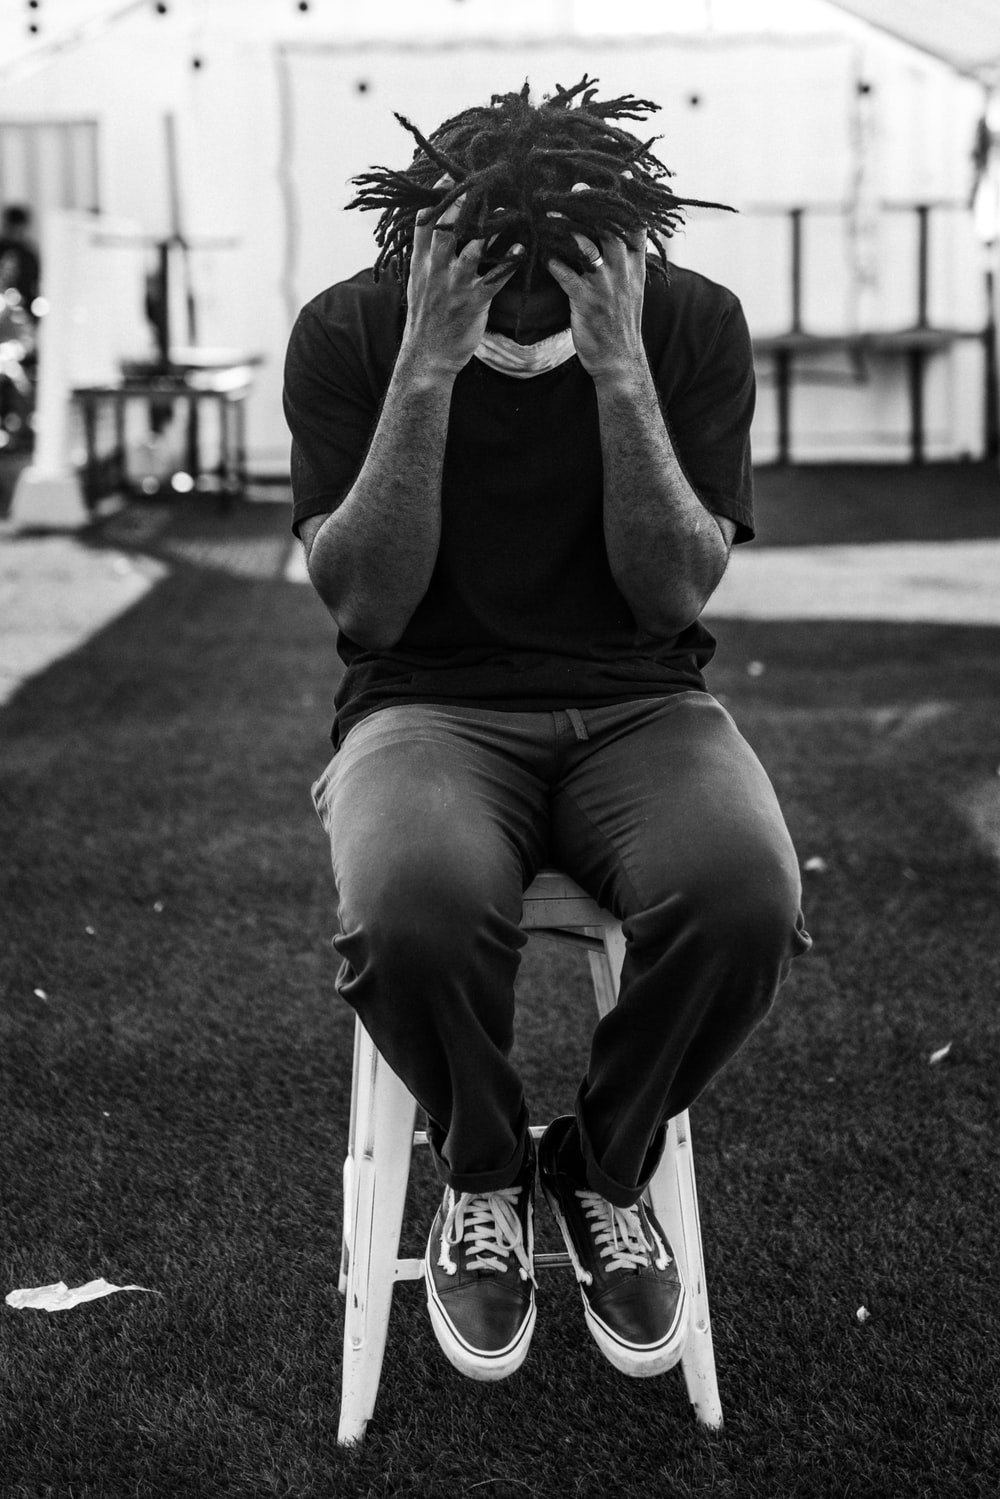 man in gray crew neck t-shirt and black pants sitting on concrete bench